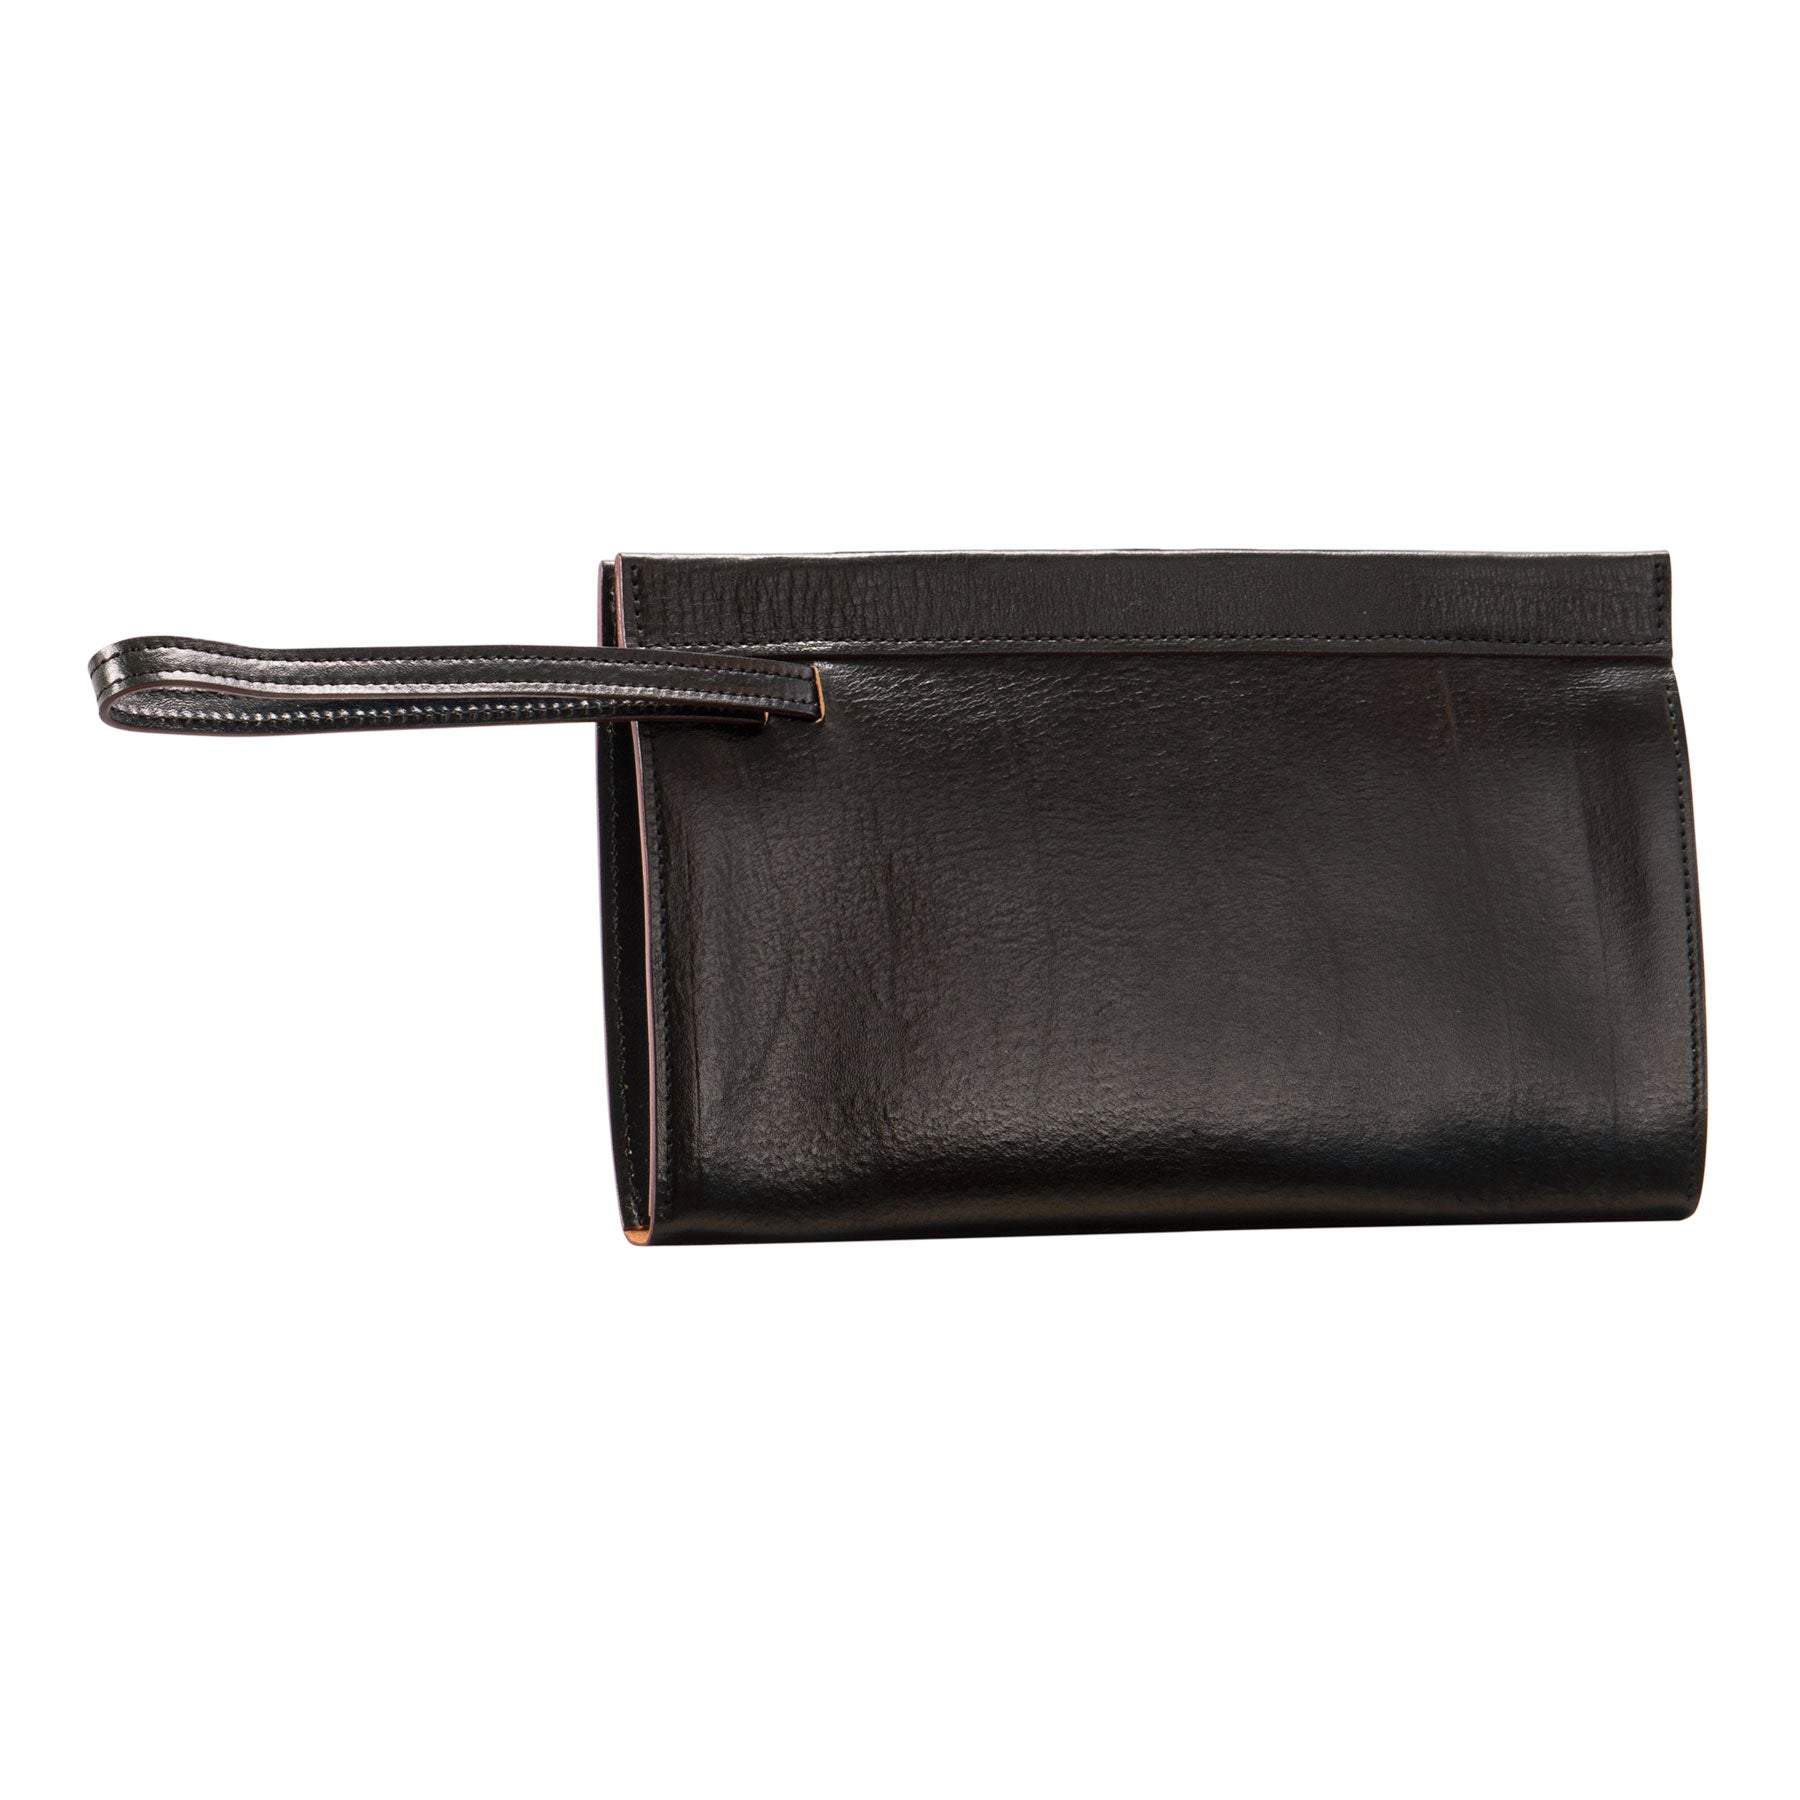 Glaser Designs Clutch Portfolio. Hand colored Black vegetable tanned leather. Magnetic closure and retractable wrist strap. Made to-measure, custom sizes.